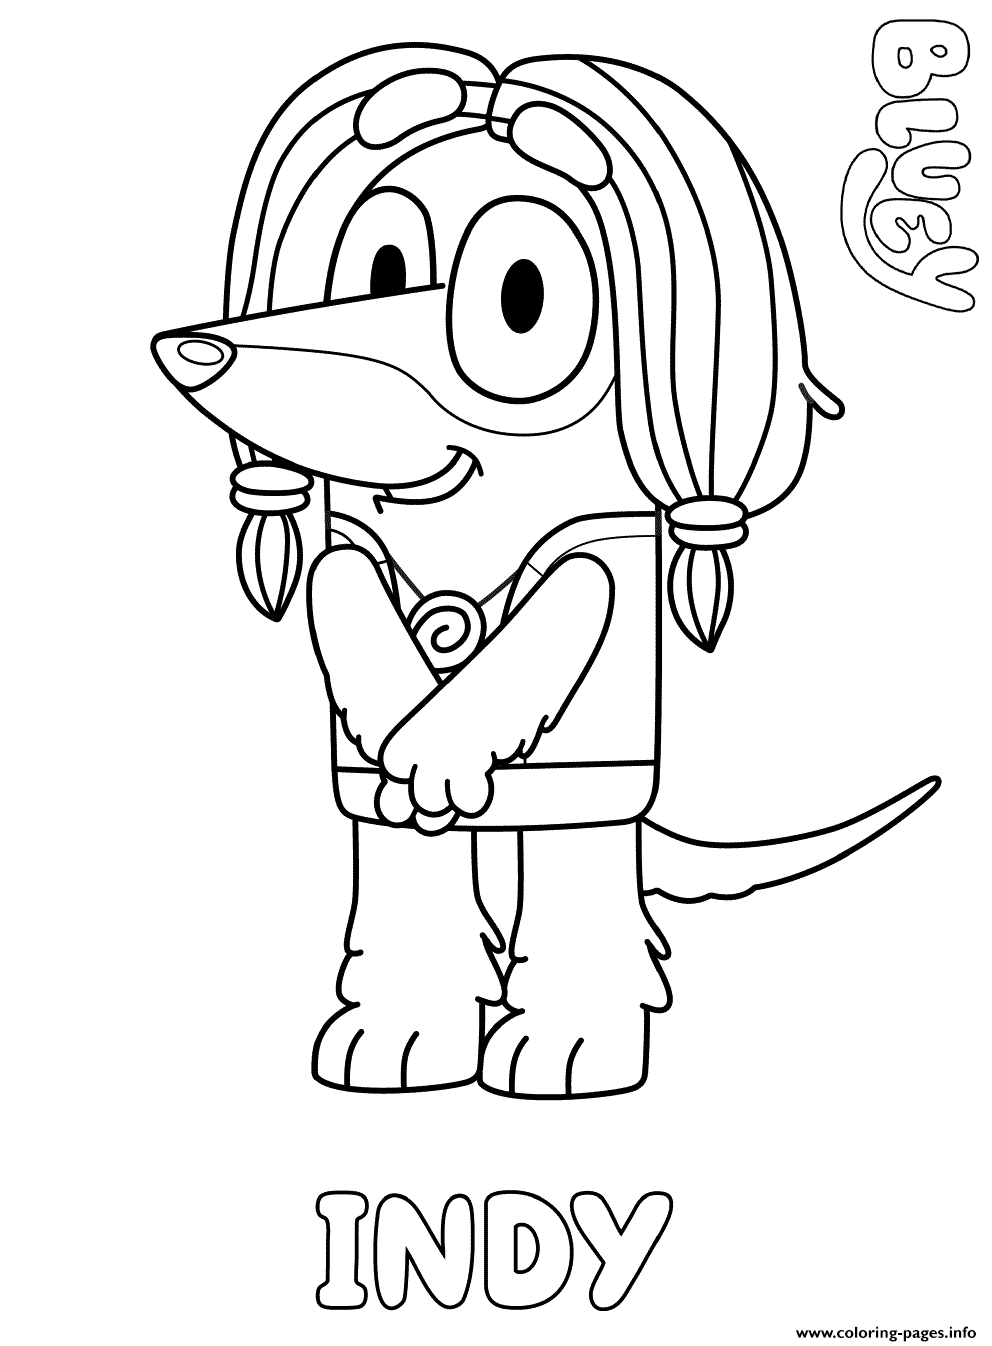 Print Afghan Hound Indy Coloring Pages Coloring Pages Kids Party Printables Kids Colouring Printables